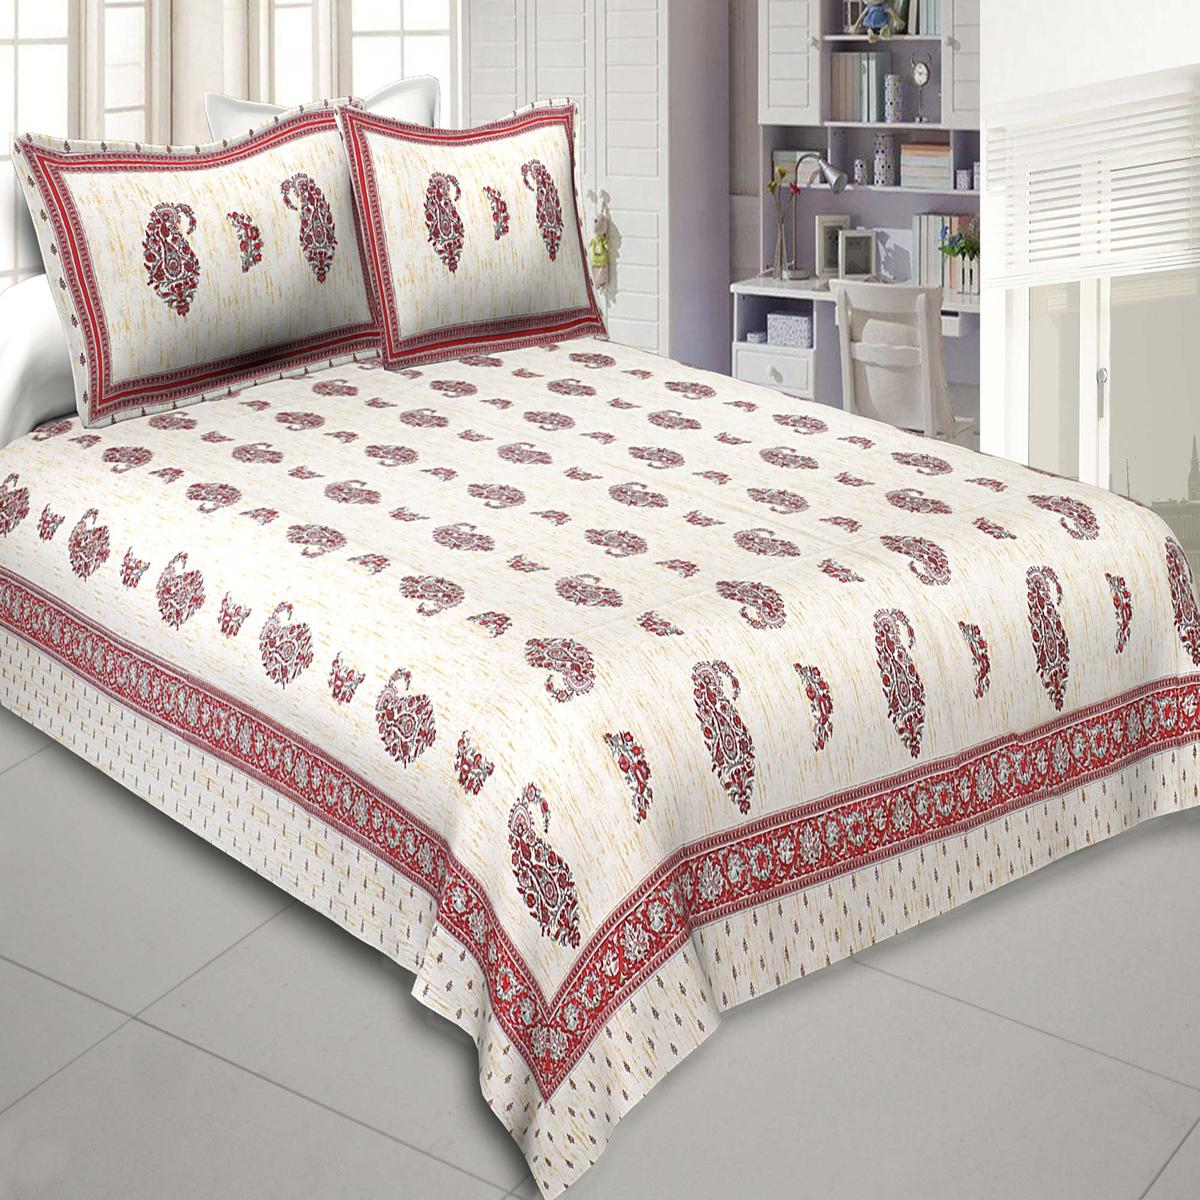 Jaipur Fabric Marble Italica Maroon Cream Pure Cotton Double Bedsheet With Two Pillow Covers